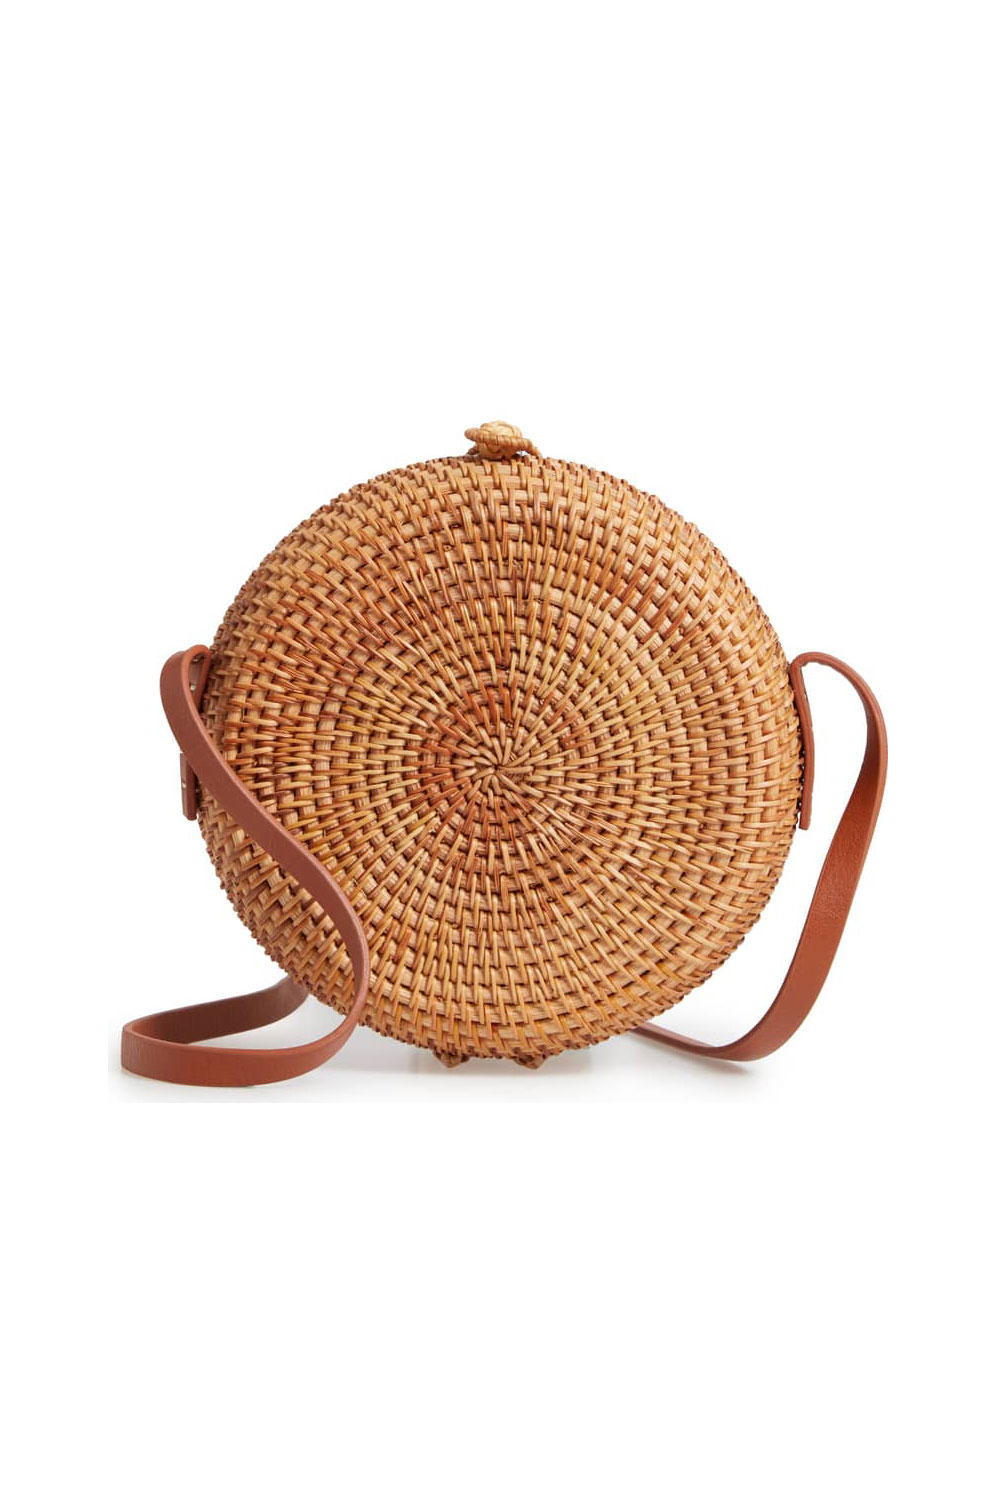 Madewell Straw Crossbody  $128